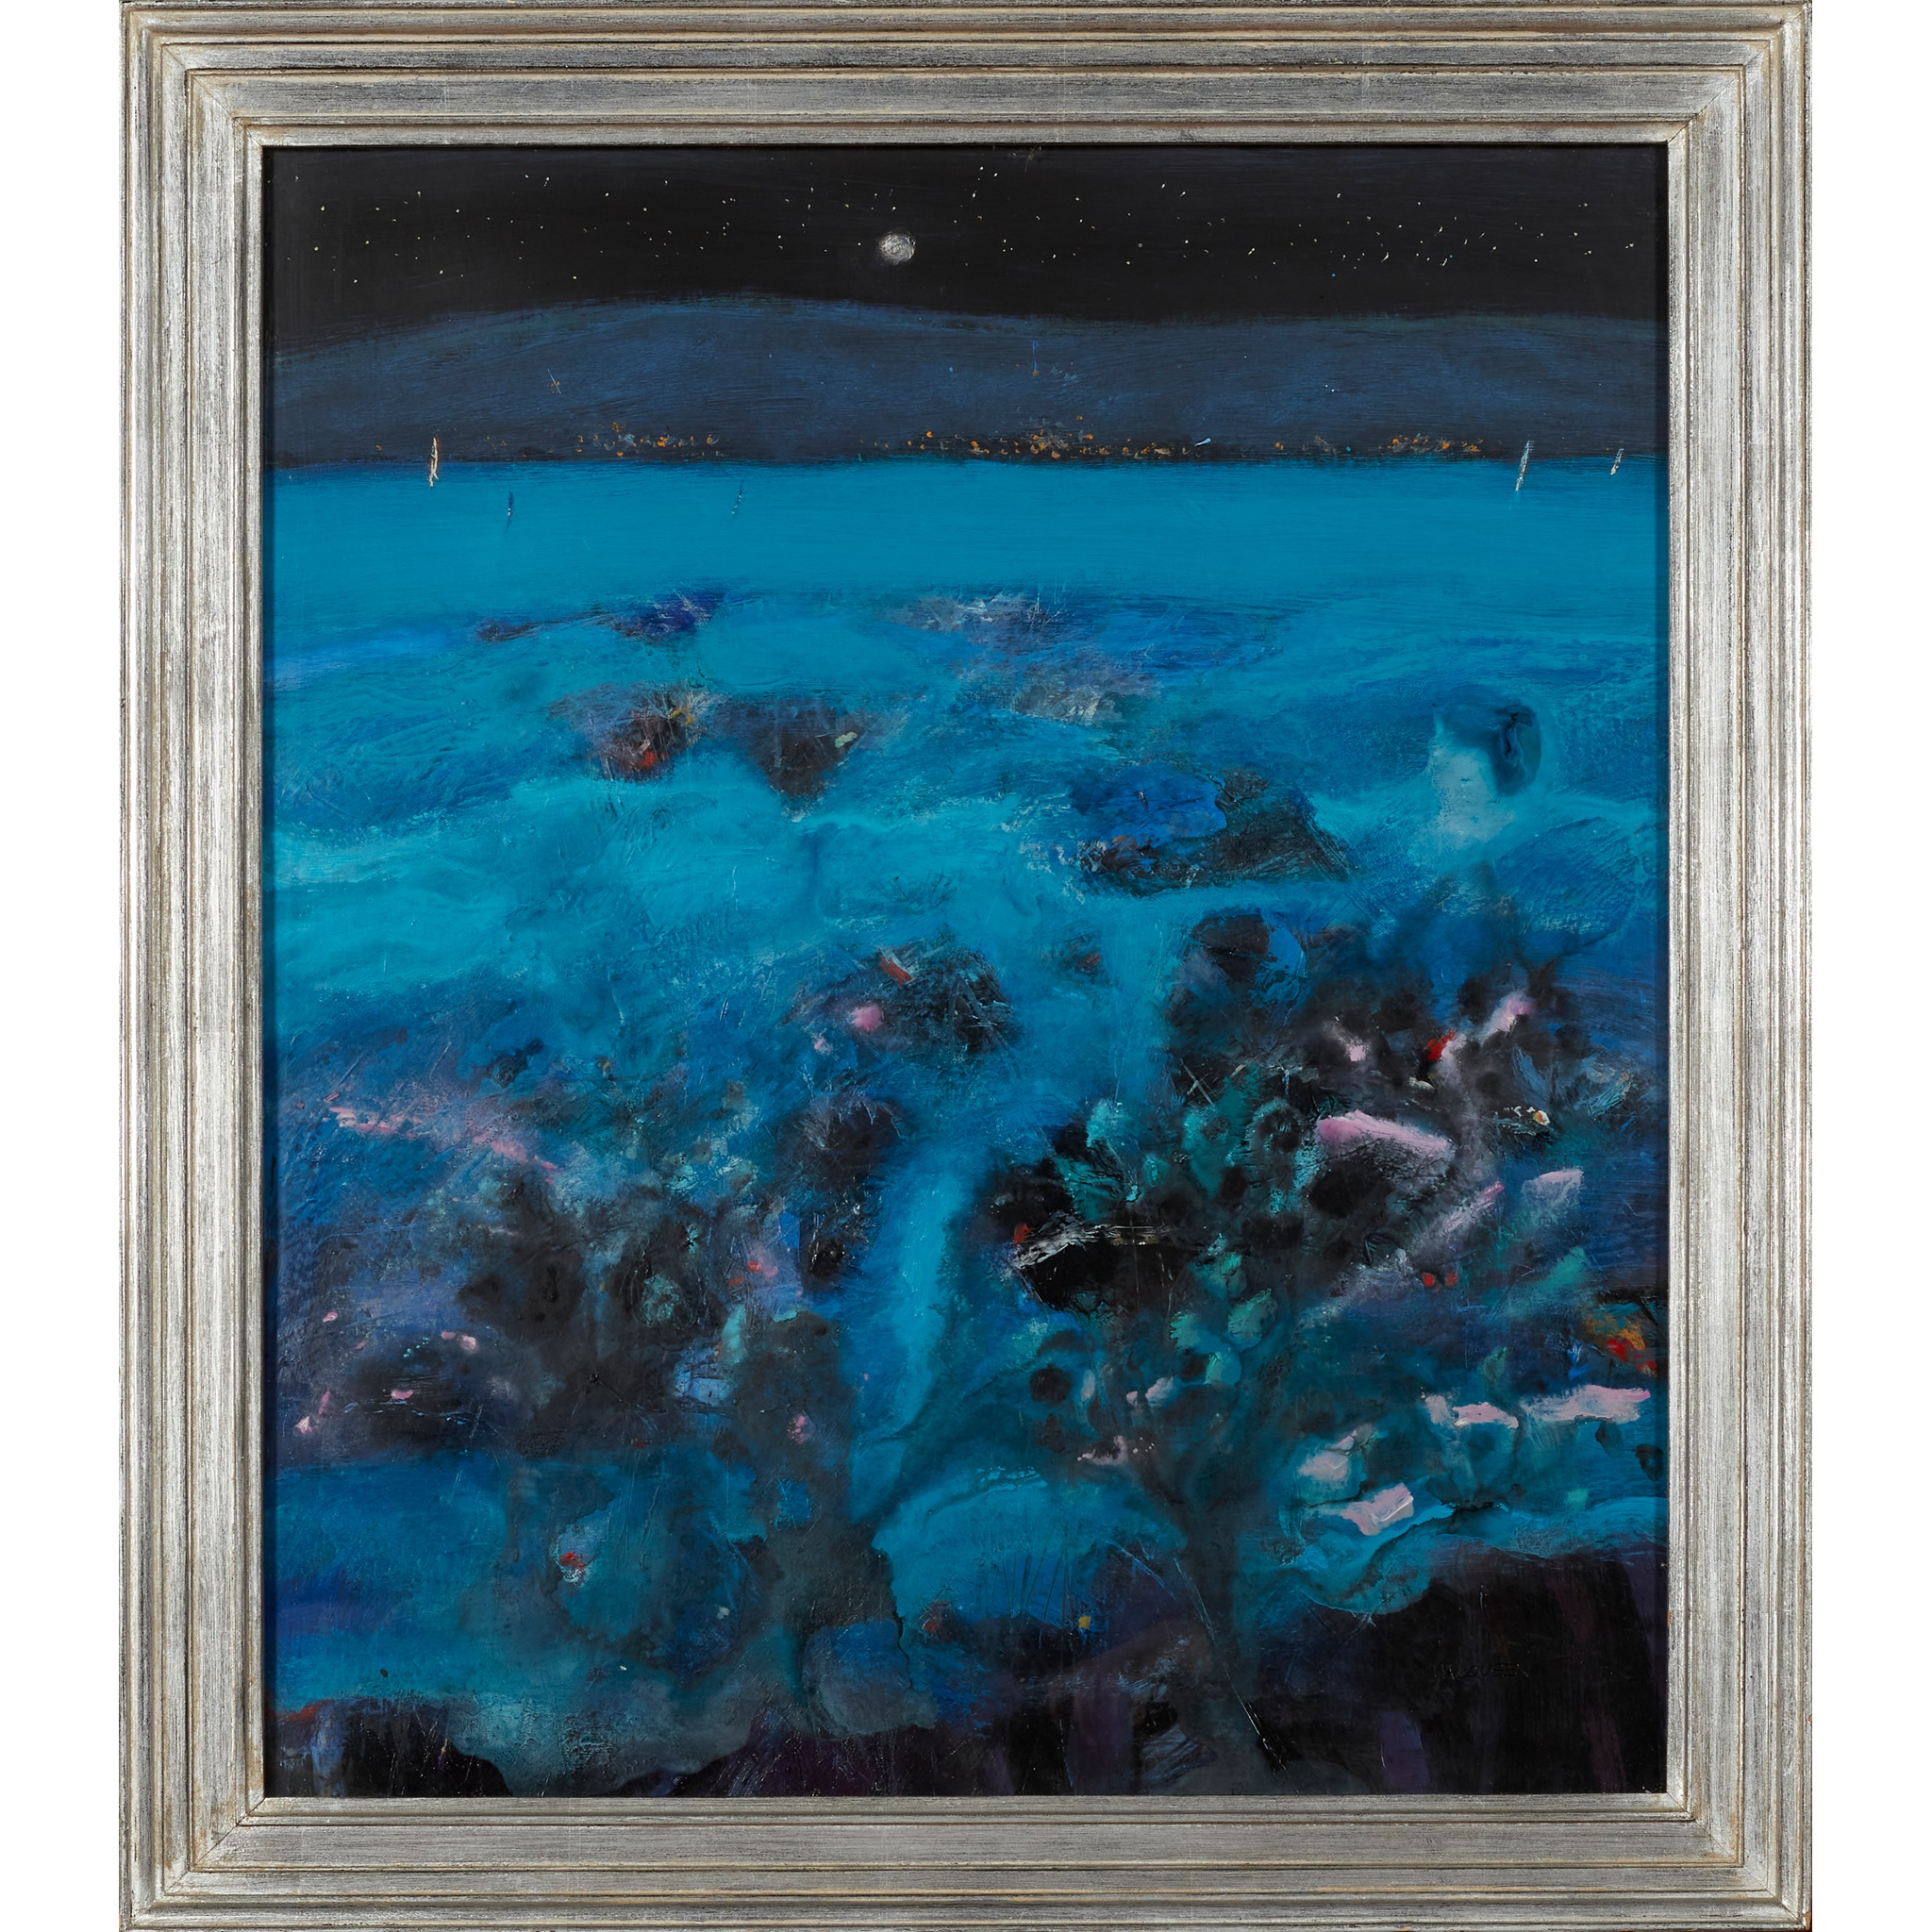 § CHARLES MACQUEEN R.S.W., R.G.I. (SCOTTISH 1940-) UNTITLED (SEASCAPE NOCTURNE) - Image 2 of 3